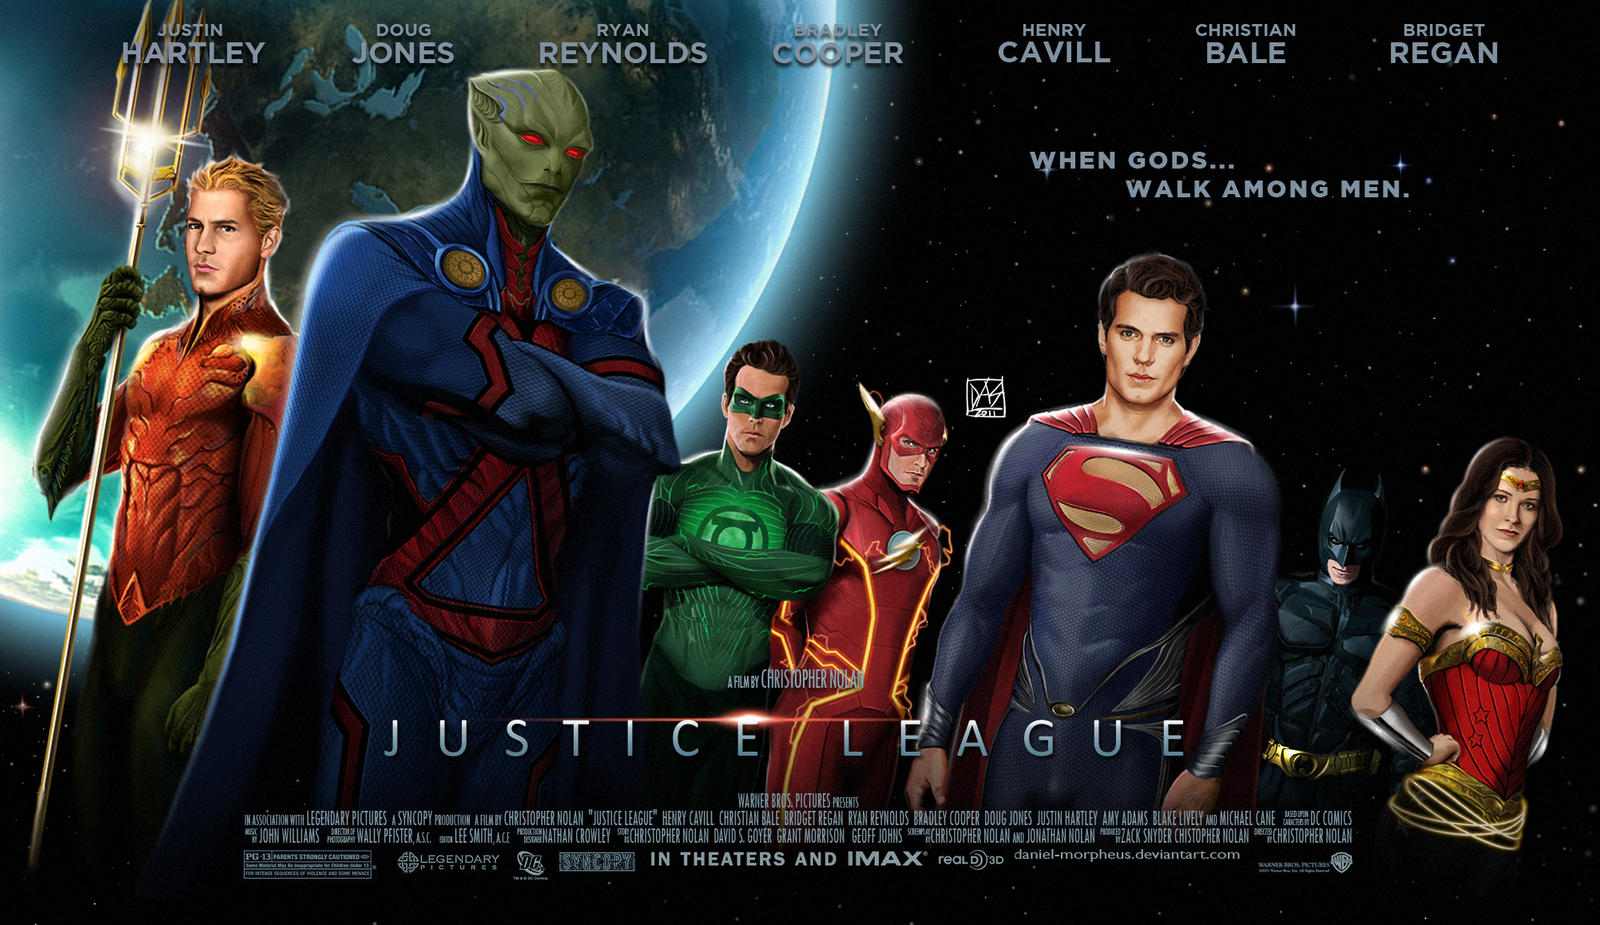 Justice League Movie Poster